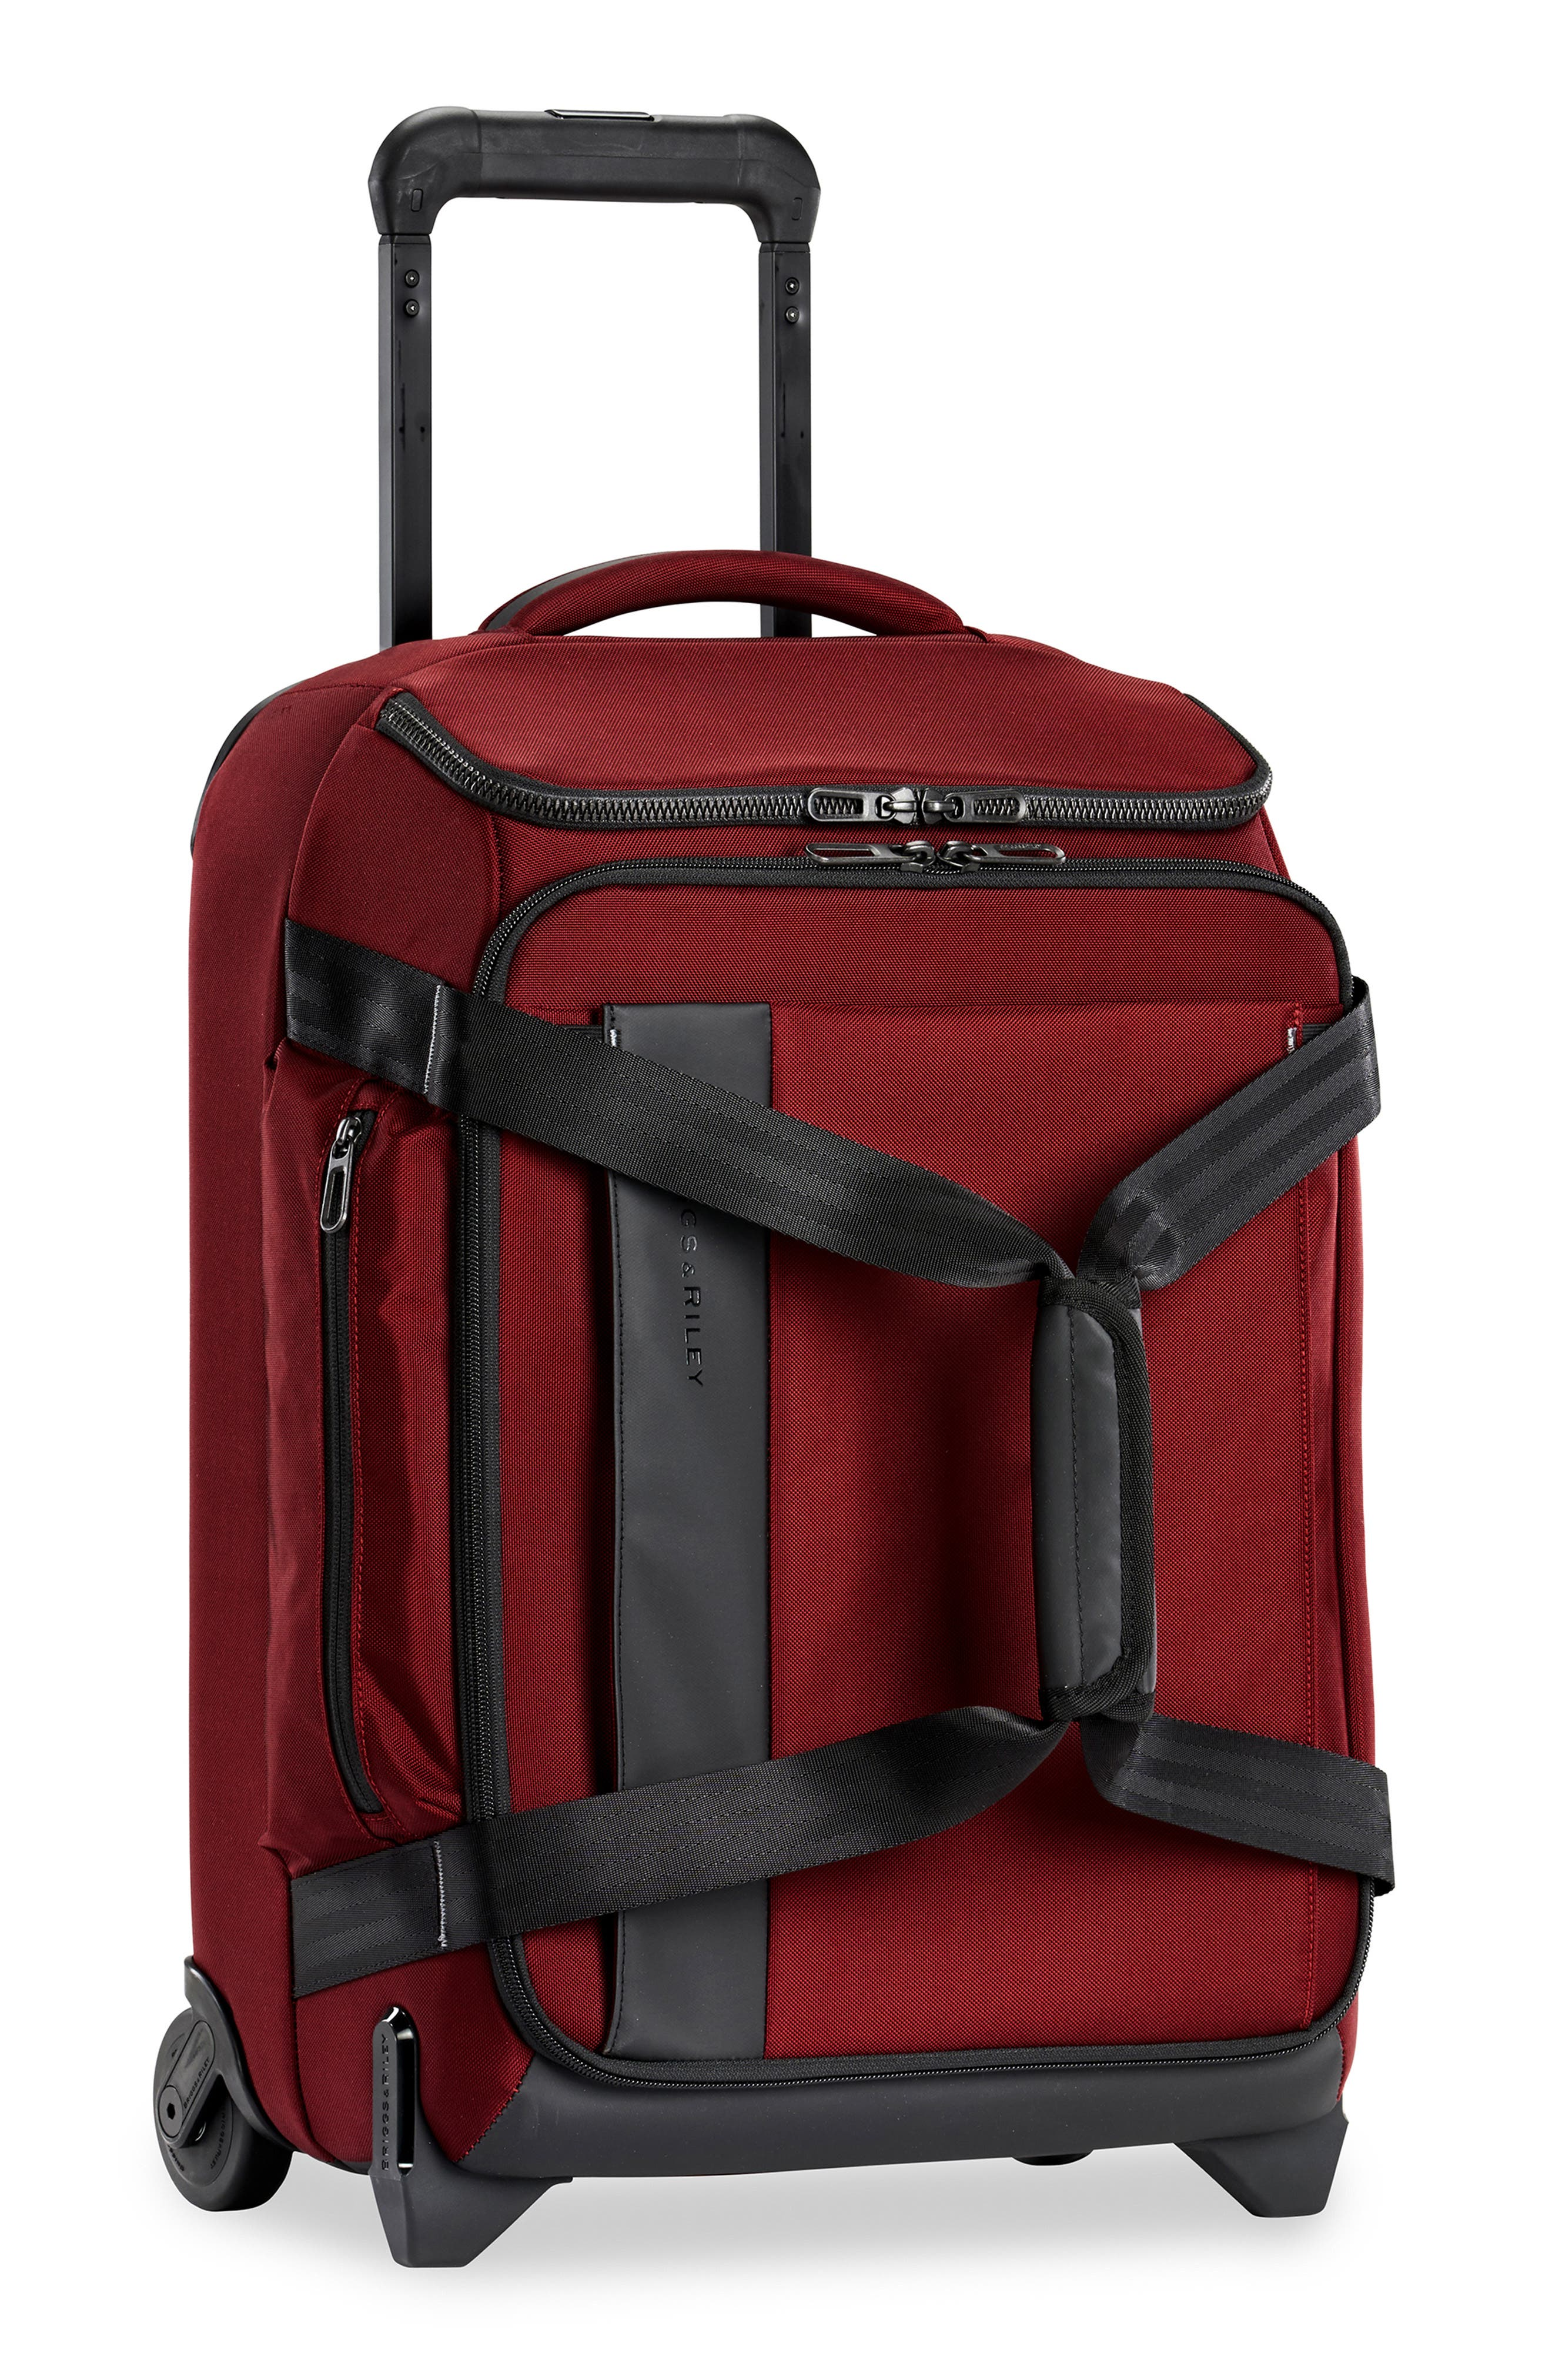 Zdx 21-Inch Carry-On Upright Duffle Bag